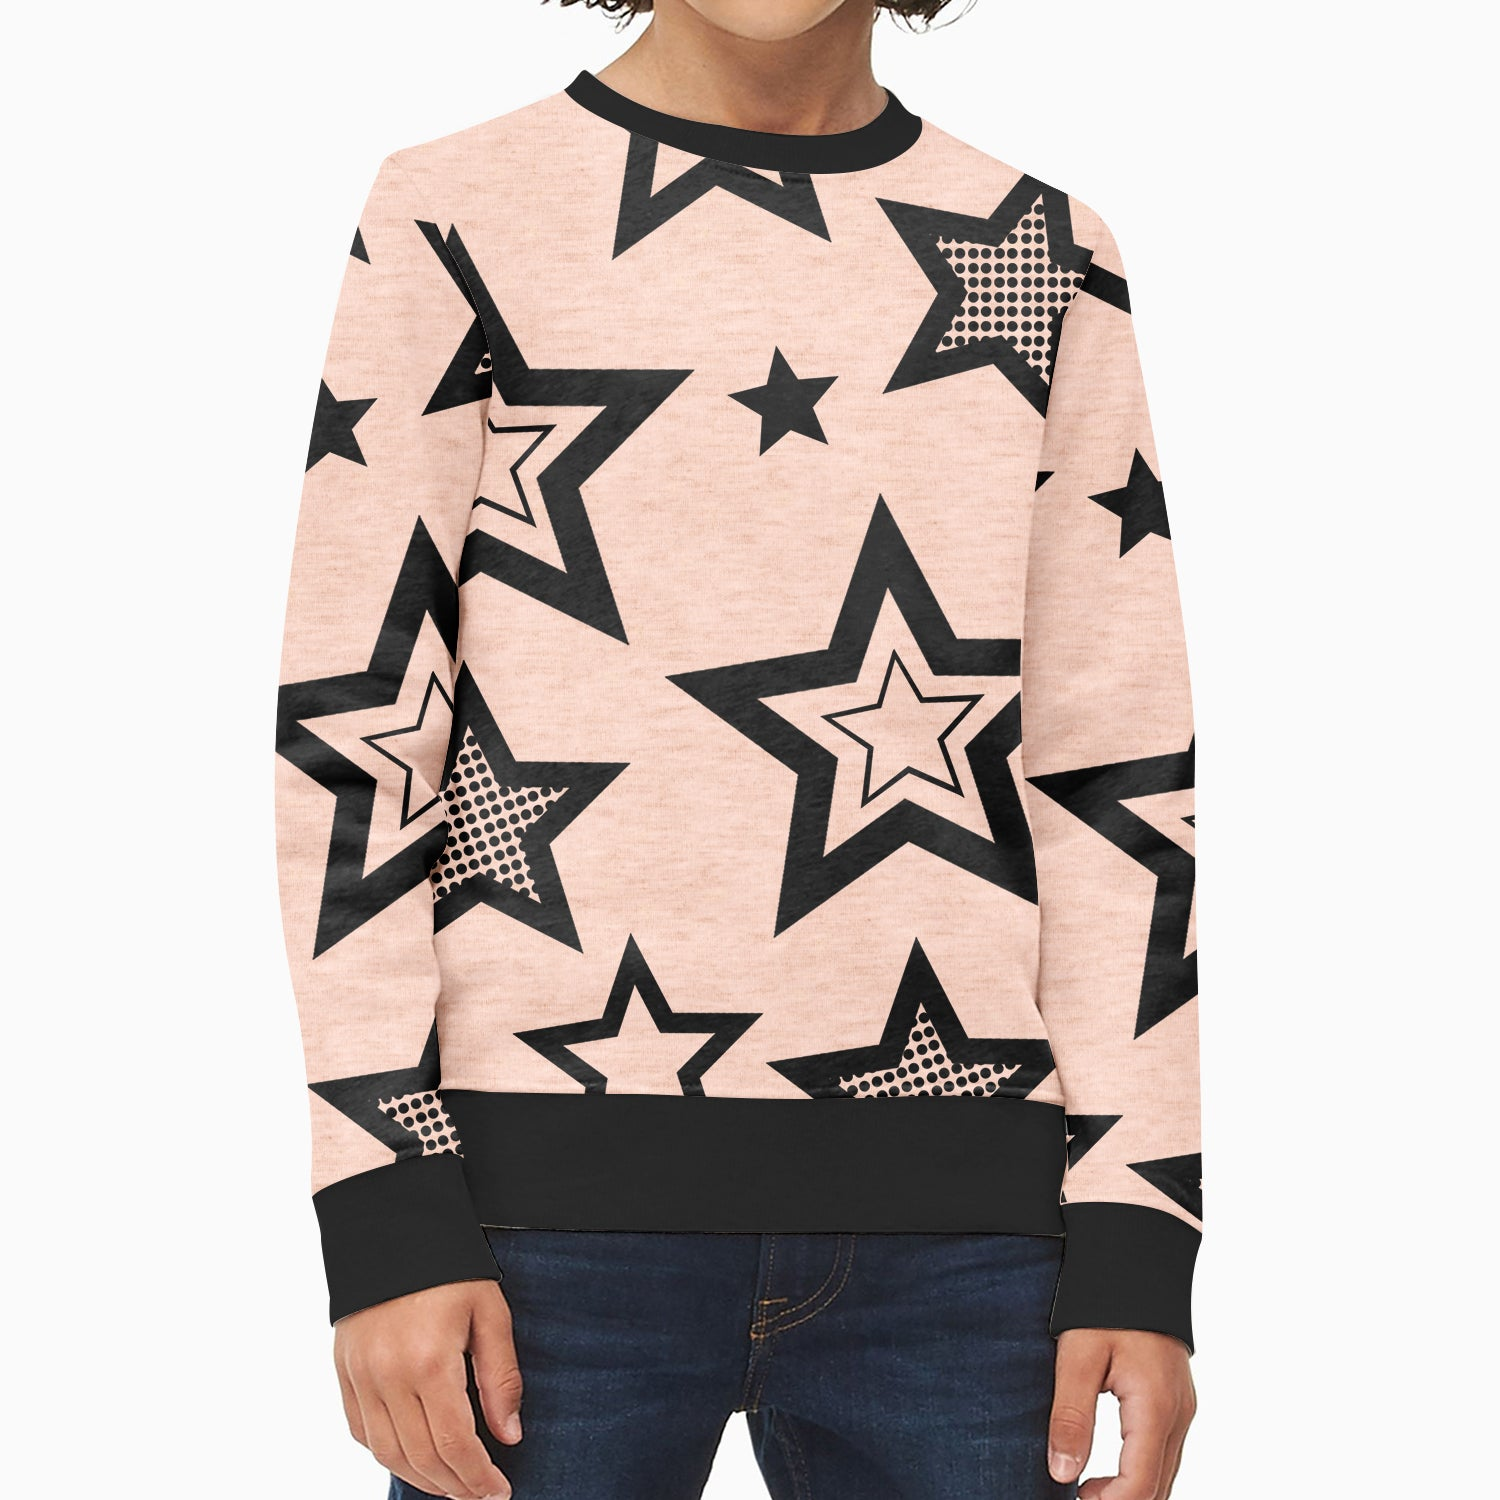 ZBaby Terry Fleece Sweatshirt For Kids-Pink Melange with Stars Print-BE12823